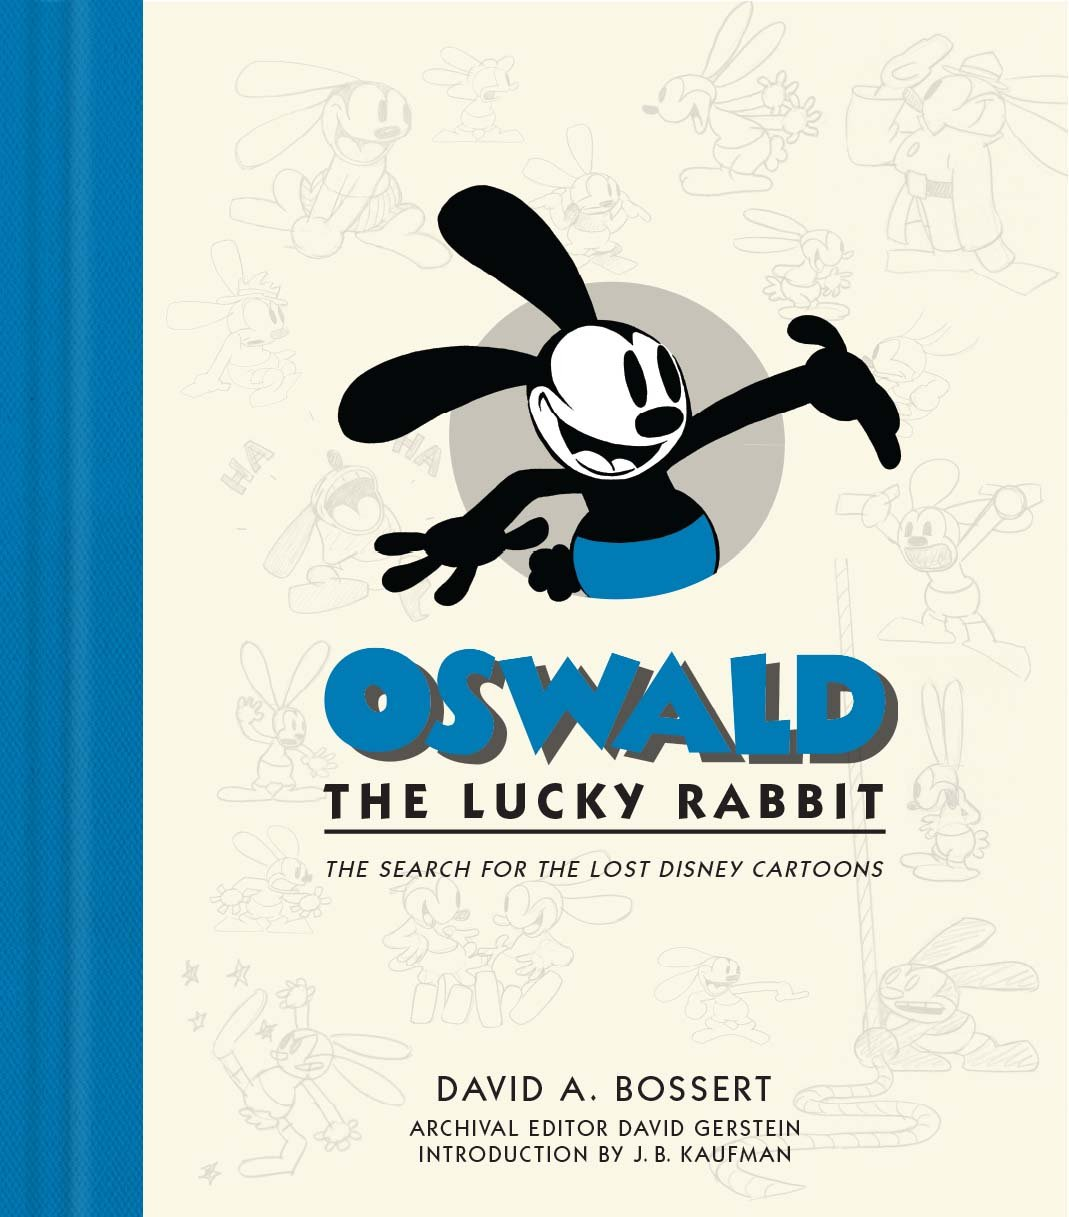 Book Review - Oswald the Lucky Rabbit: The Search for the Lost Disney Cartoons